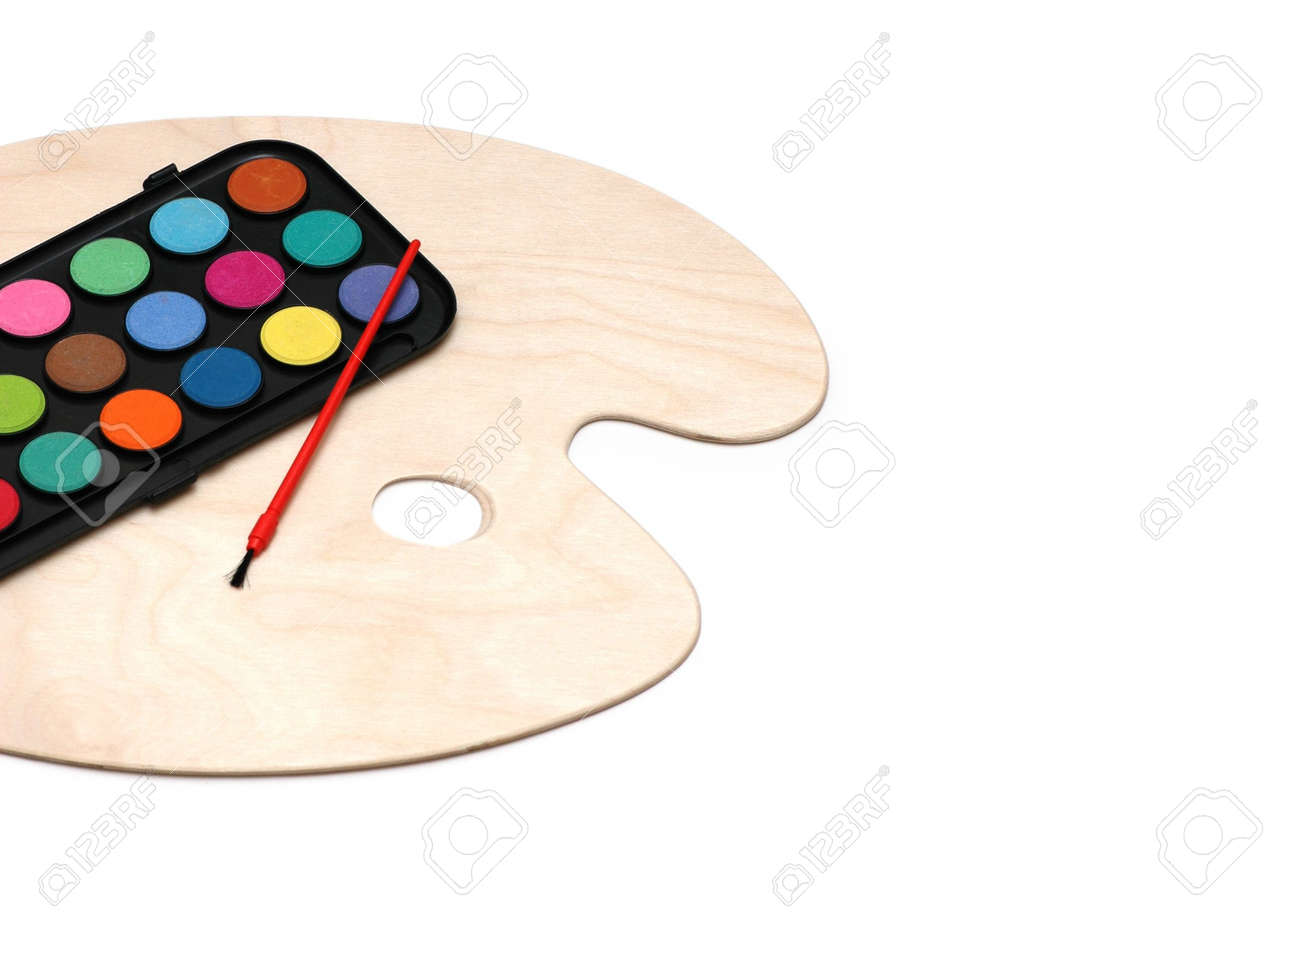 Painter's palette isolated on the white background Stock Photo - 3118335